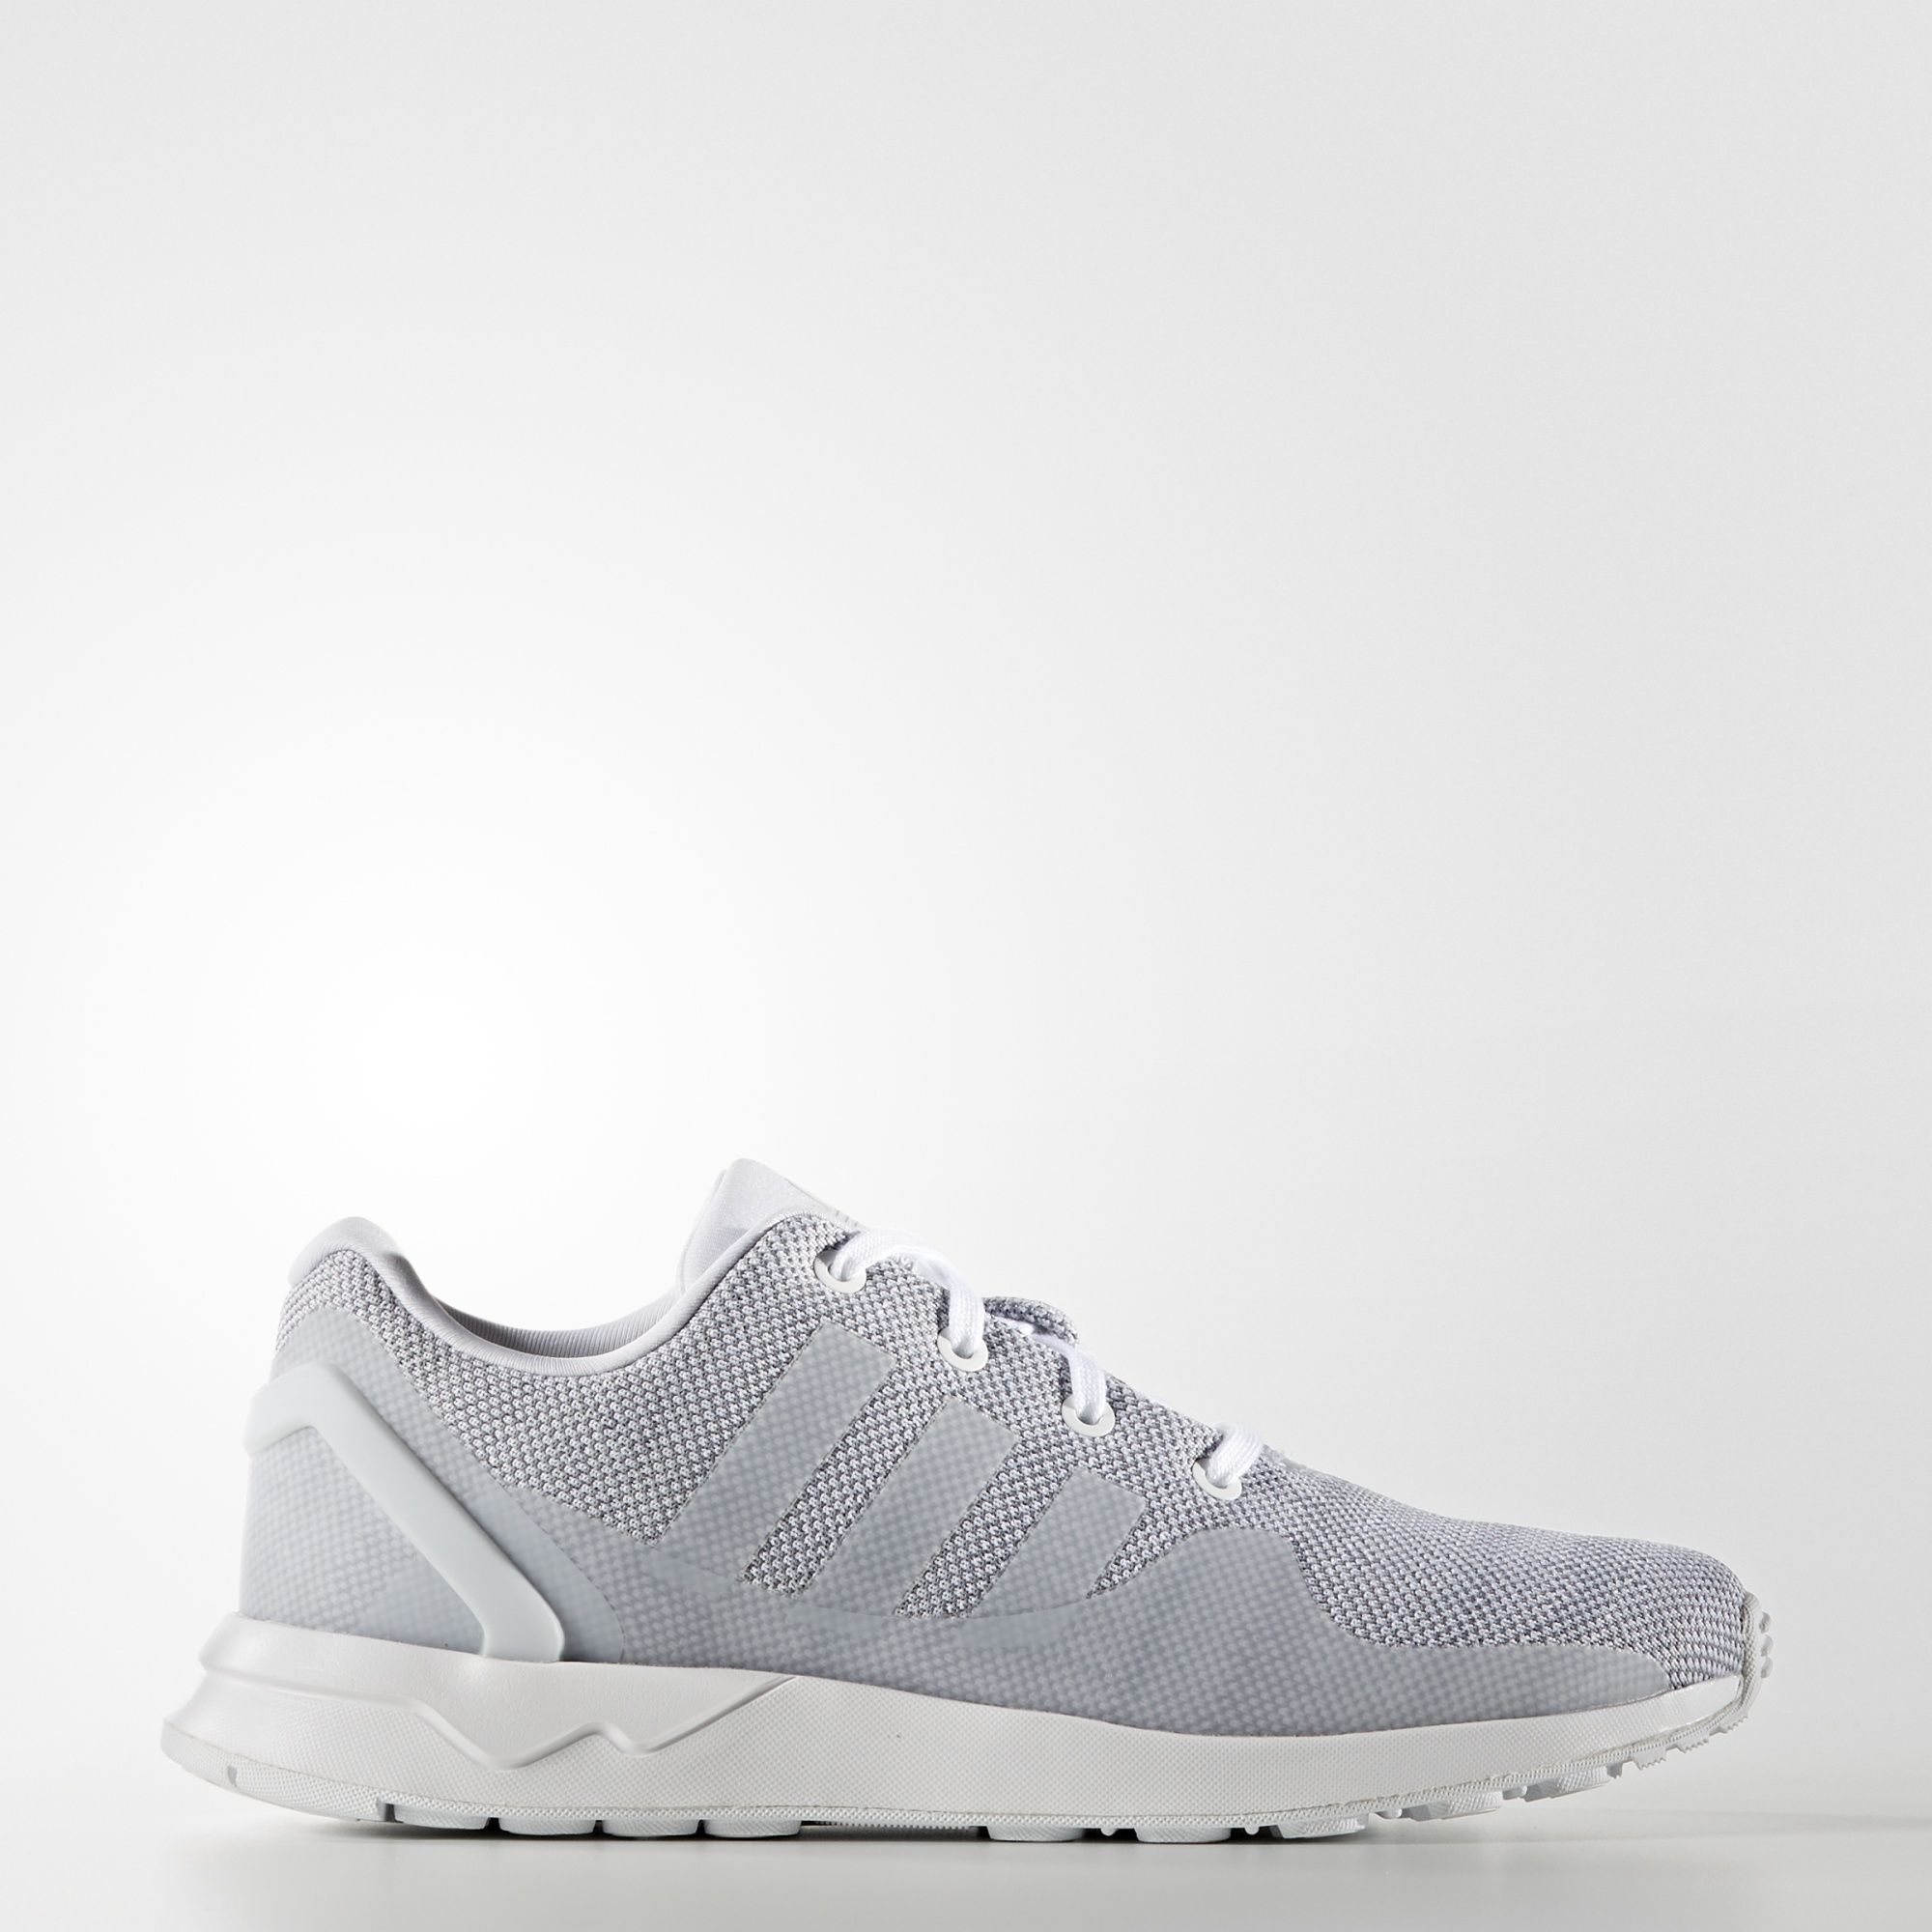 the best attitude 1c395 5837a adidas - ZX Flux ADV Tech Shoes | shoes | Adidas zx flux ...